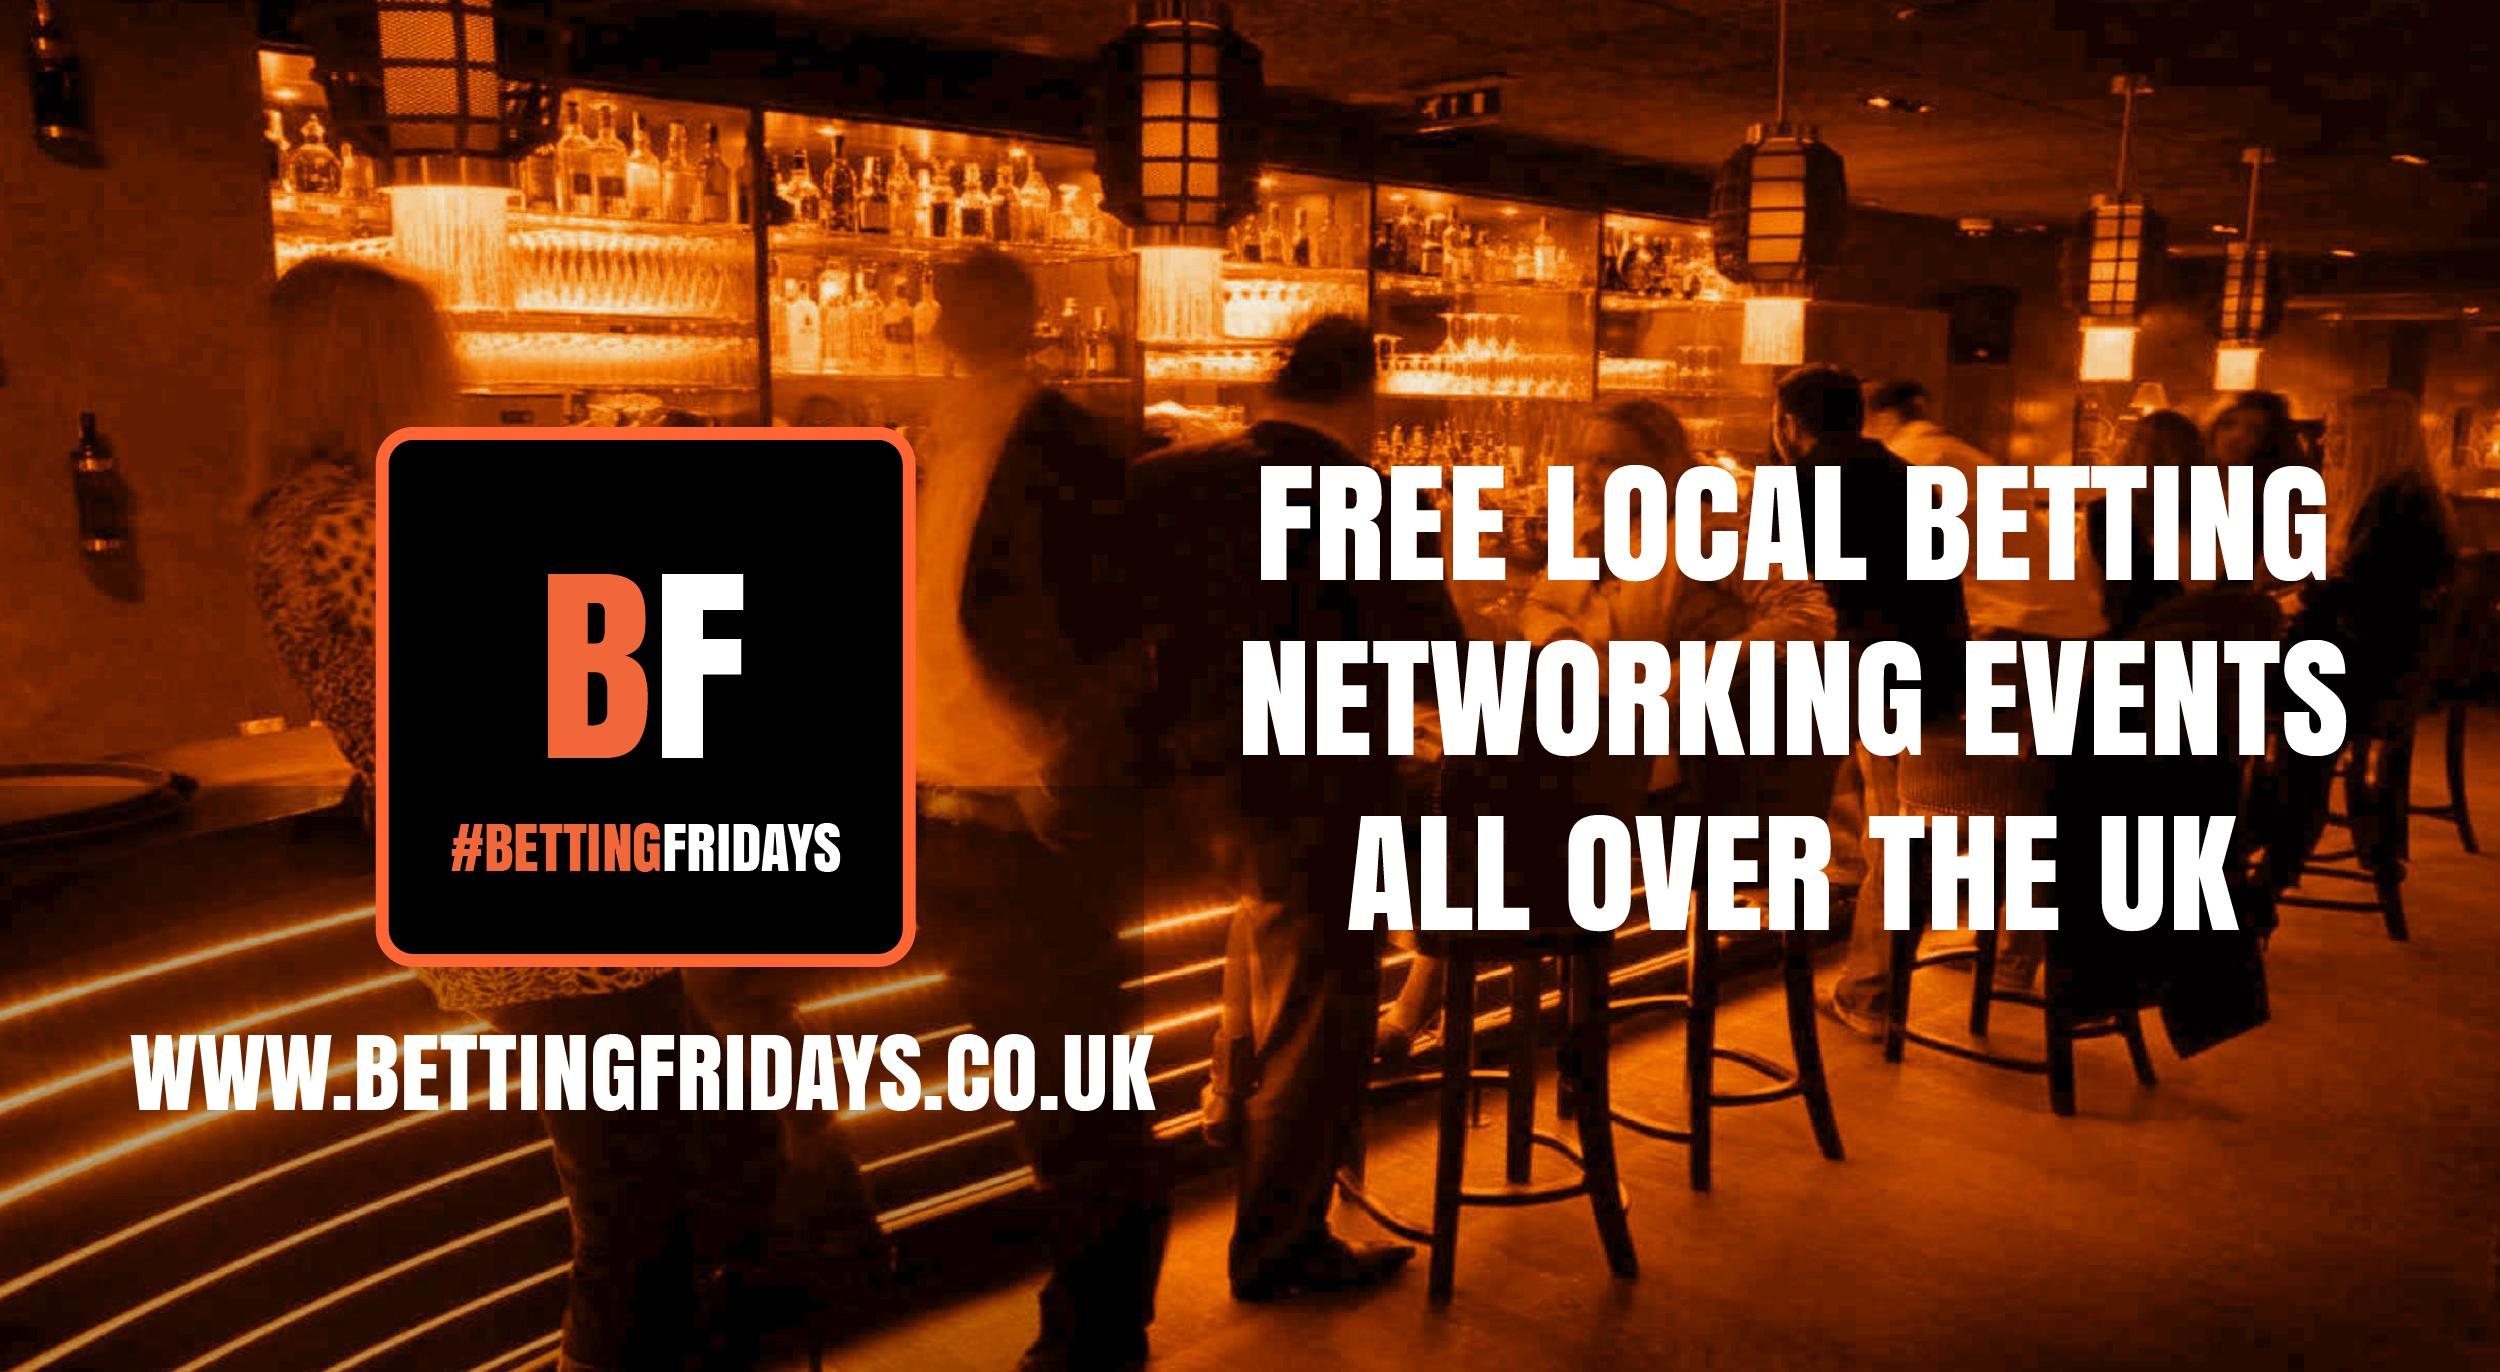 Betting Fridays! Free betting networking event in Eccles